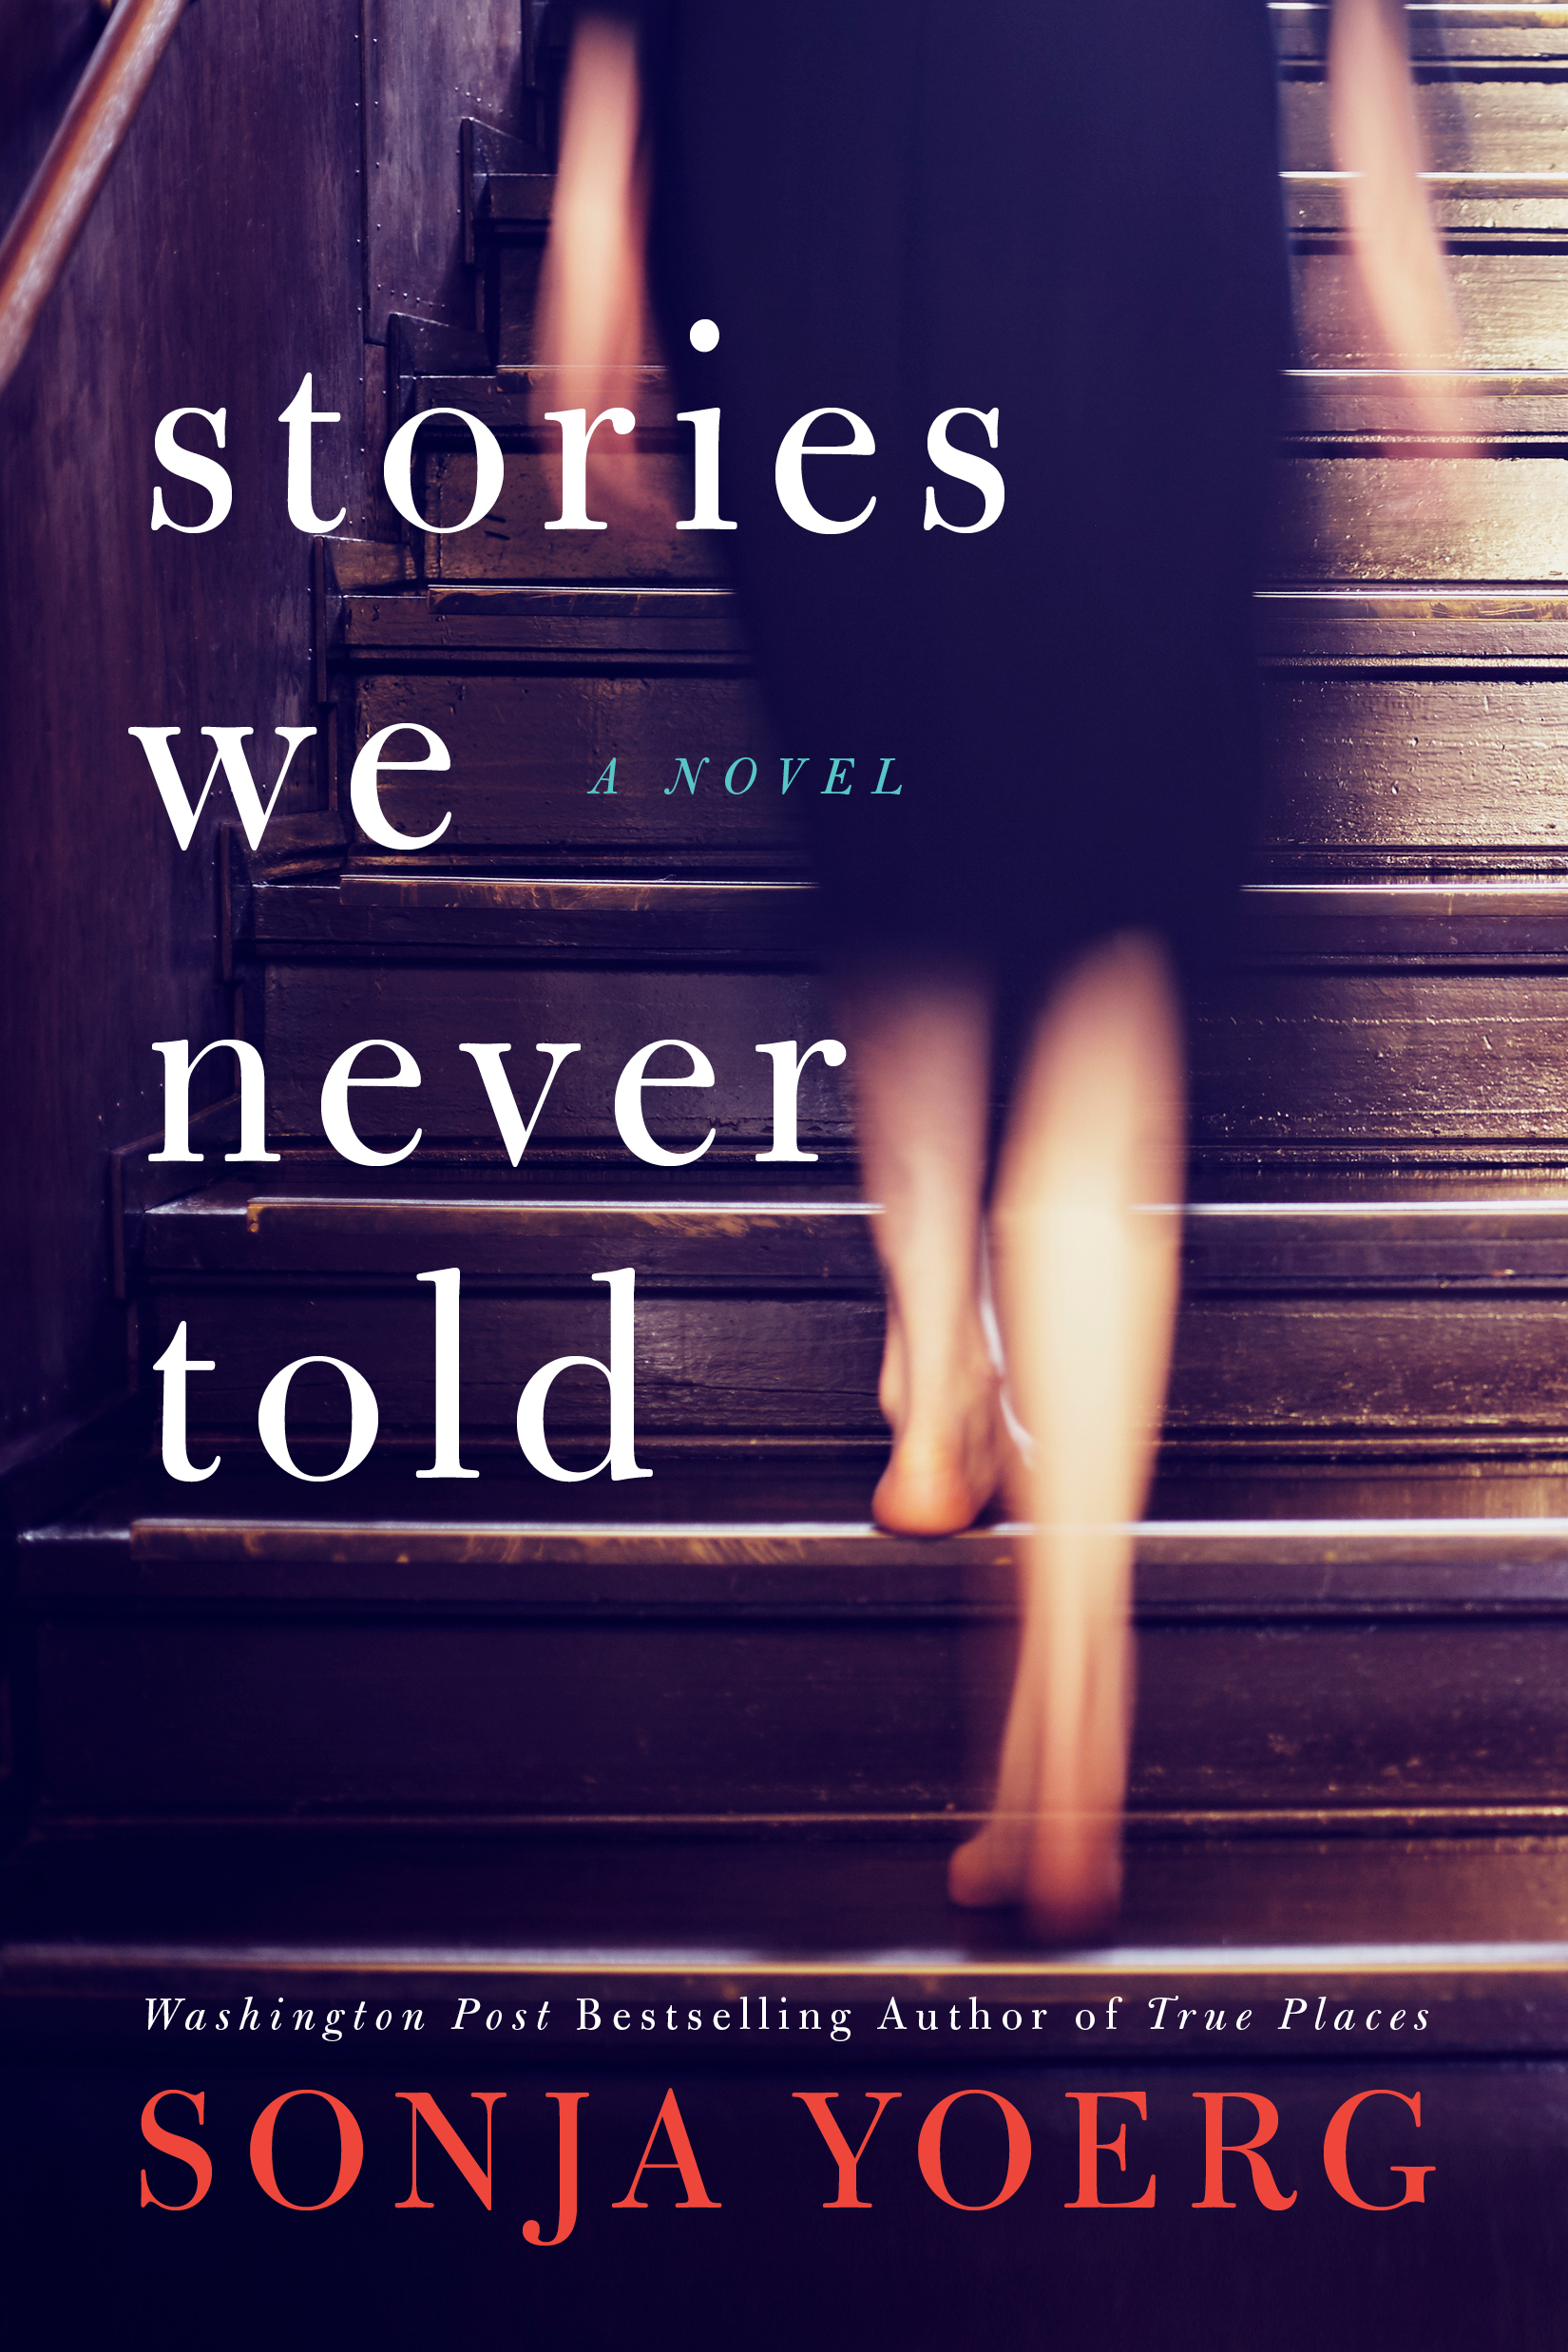 Stories We Never Told - Sonja Yoerg